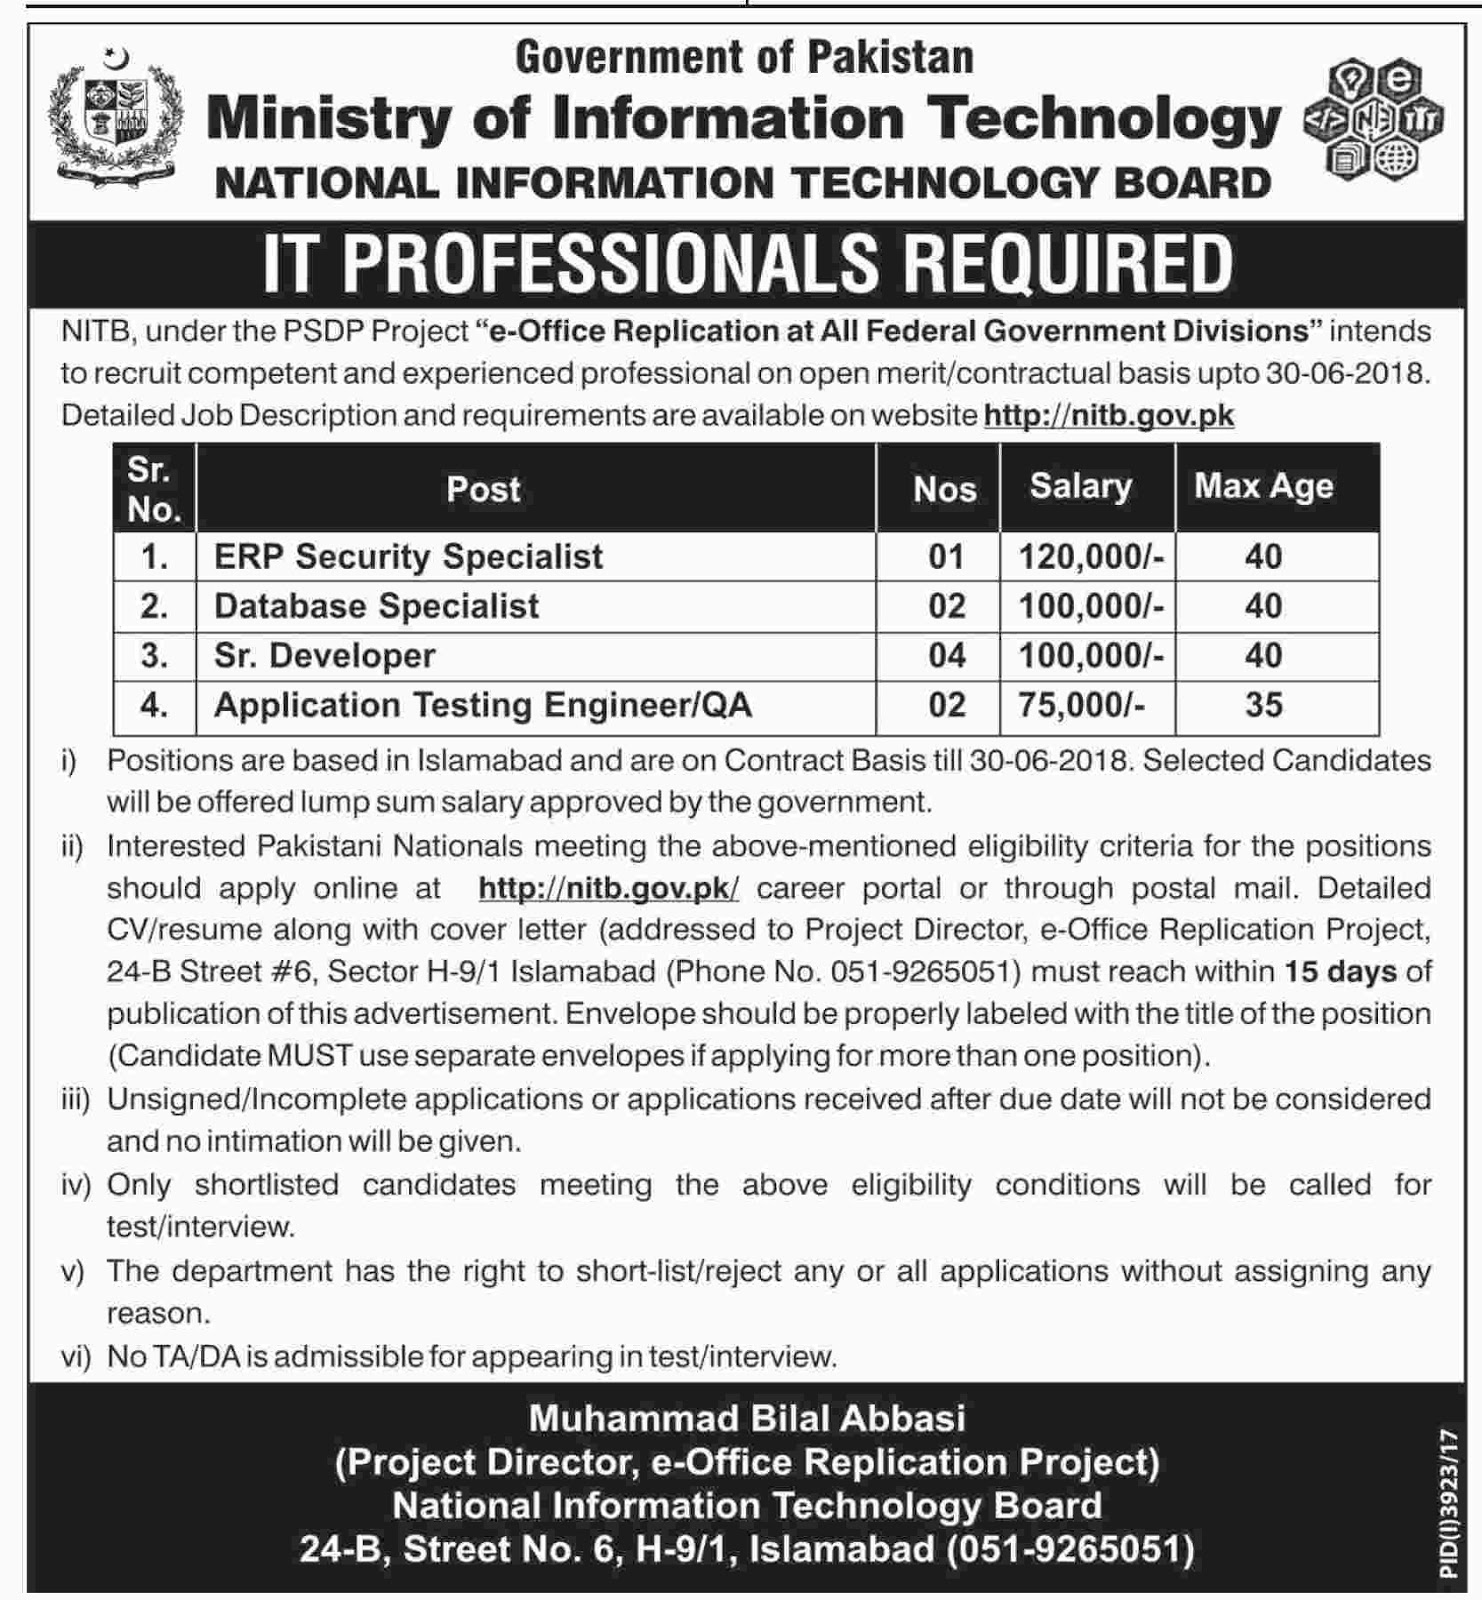 Ministry Of Information Technology latest Jobs 2018 nitb.gov.pk